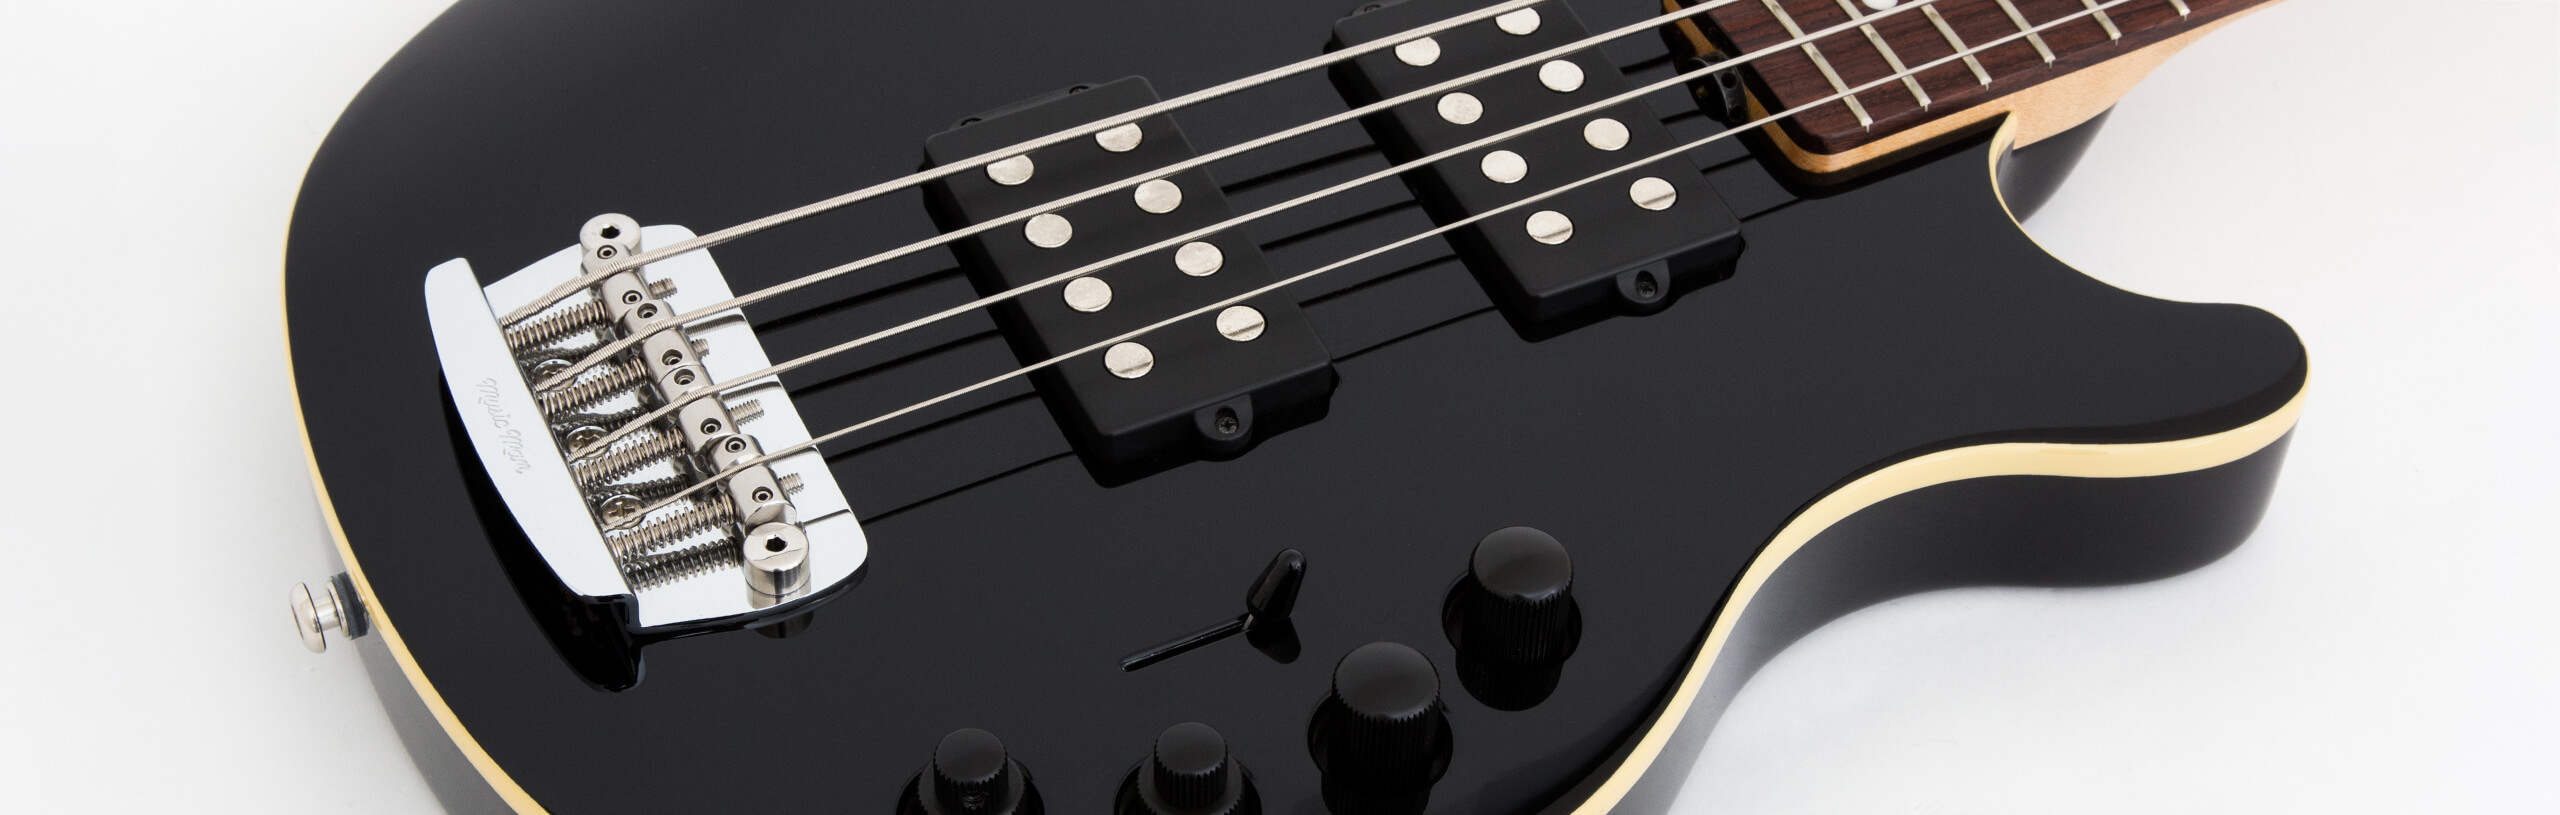 The Game Changer Bass Hero Image